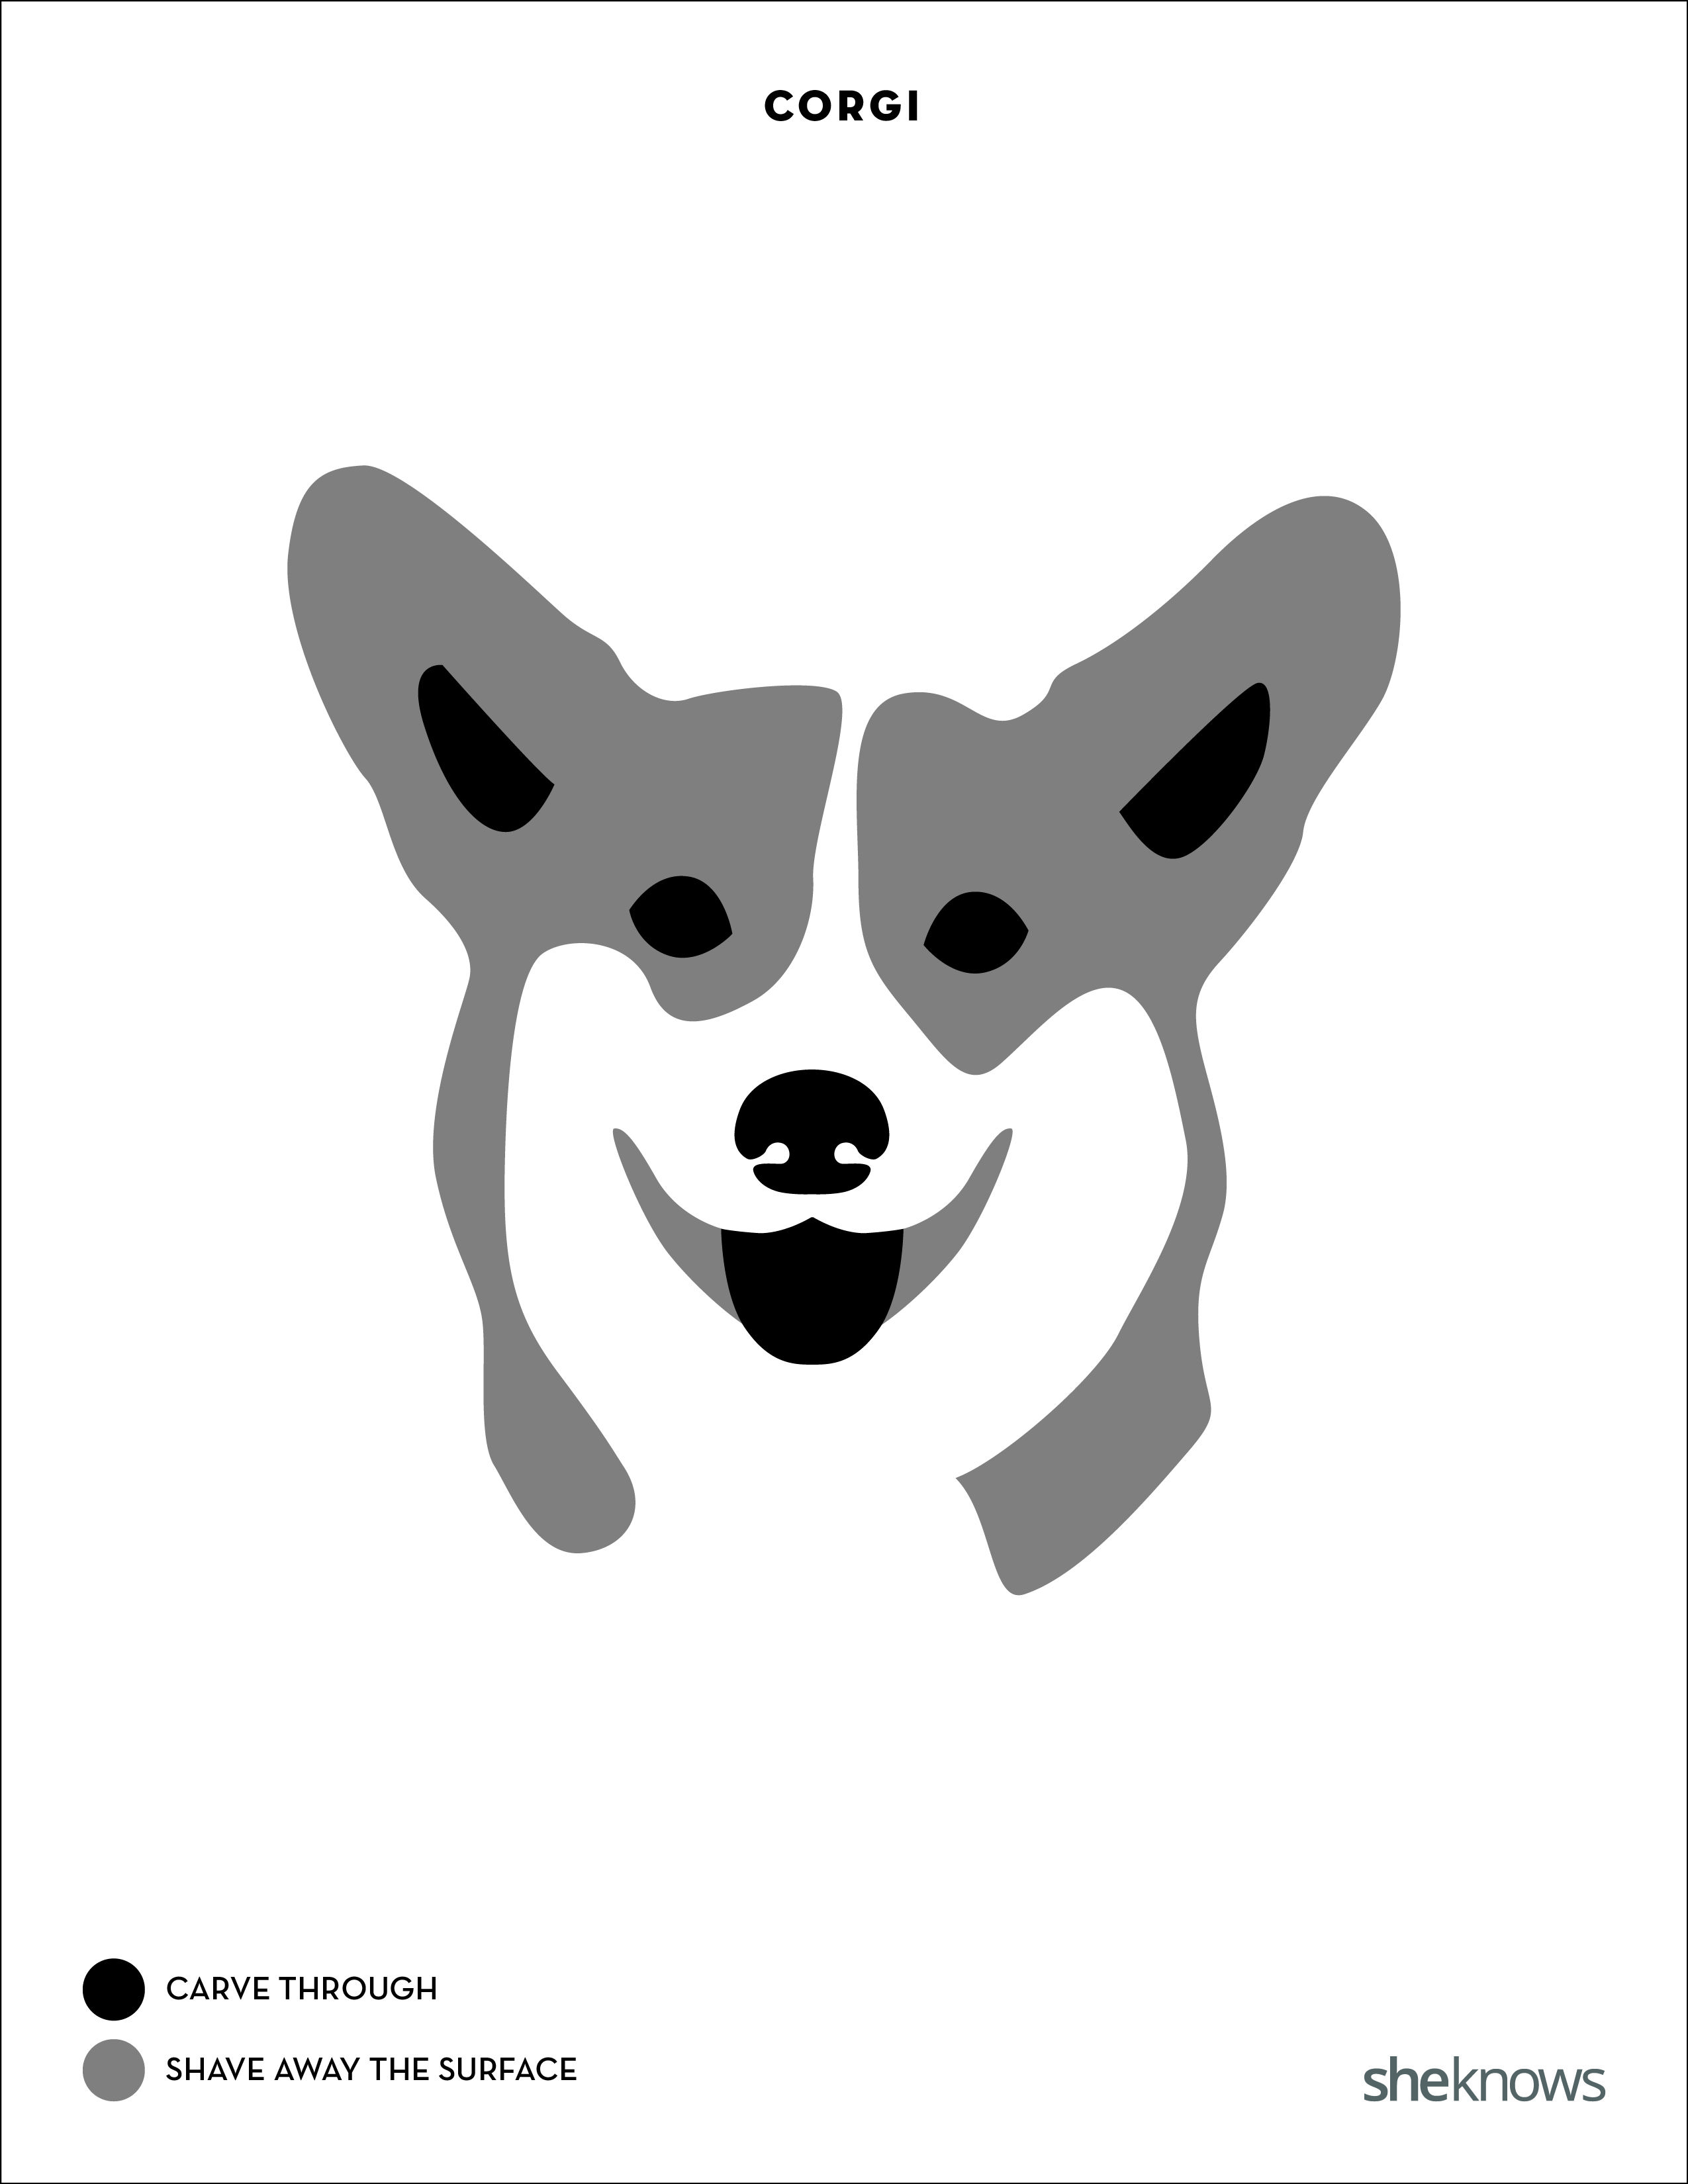 You Too Can Carve Perfect Pit Bull Amp Corgi Pumpkins With The Right Template Printable Pumpkin